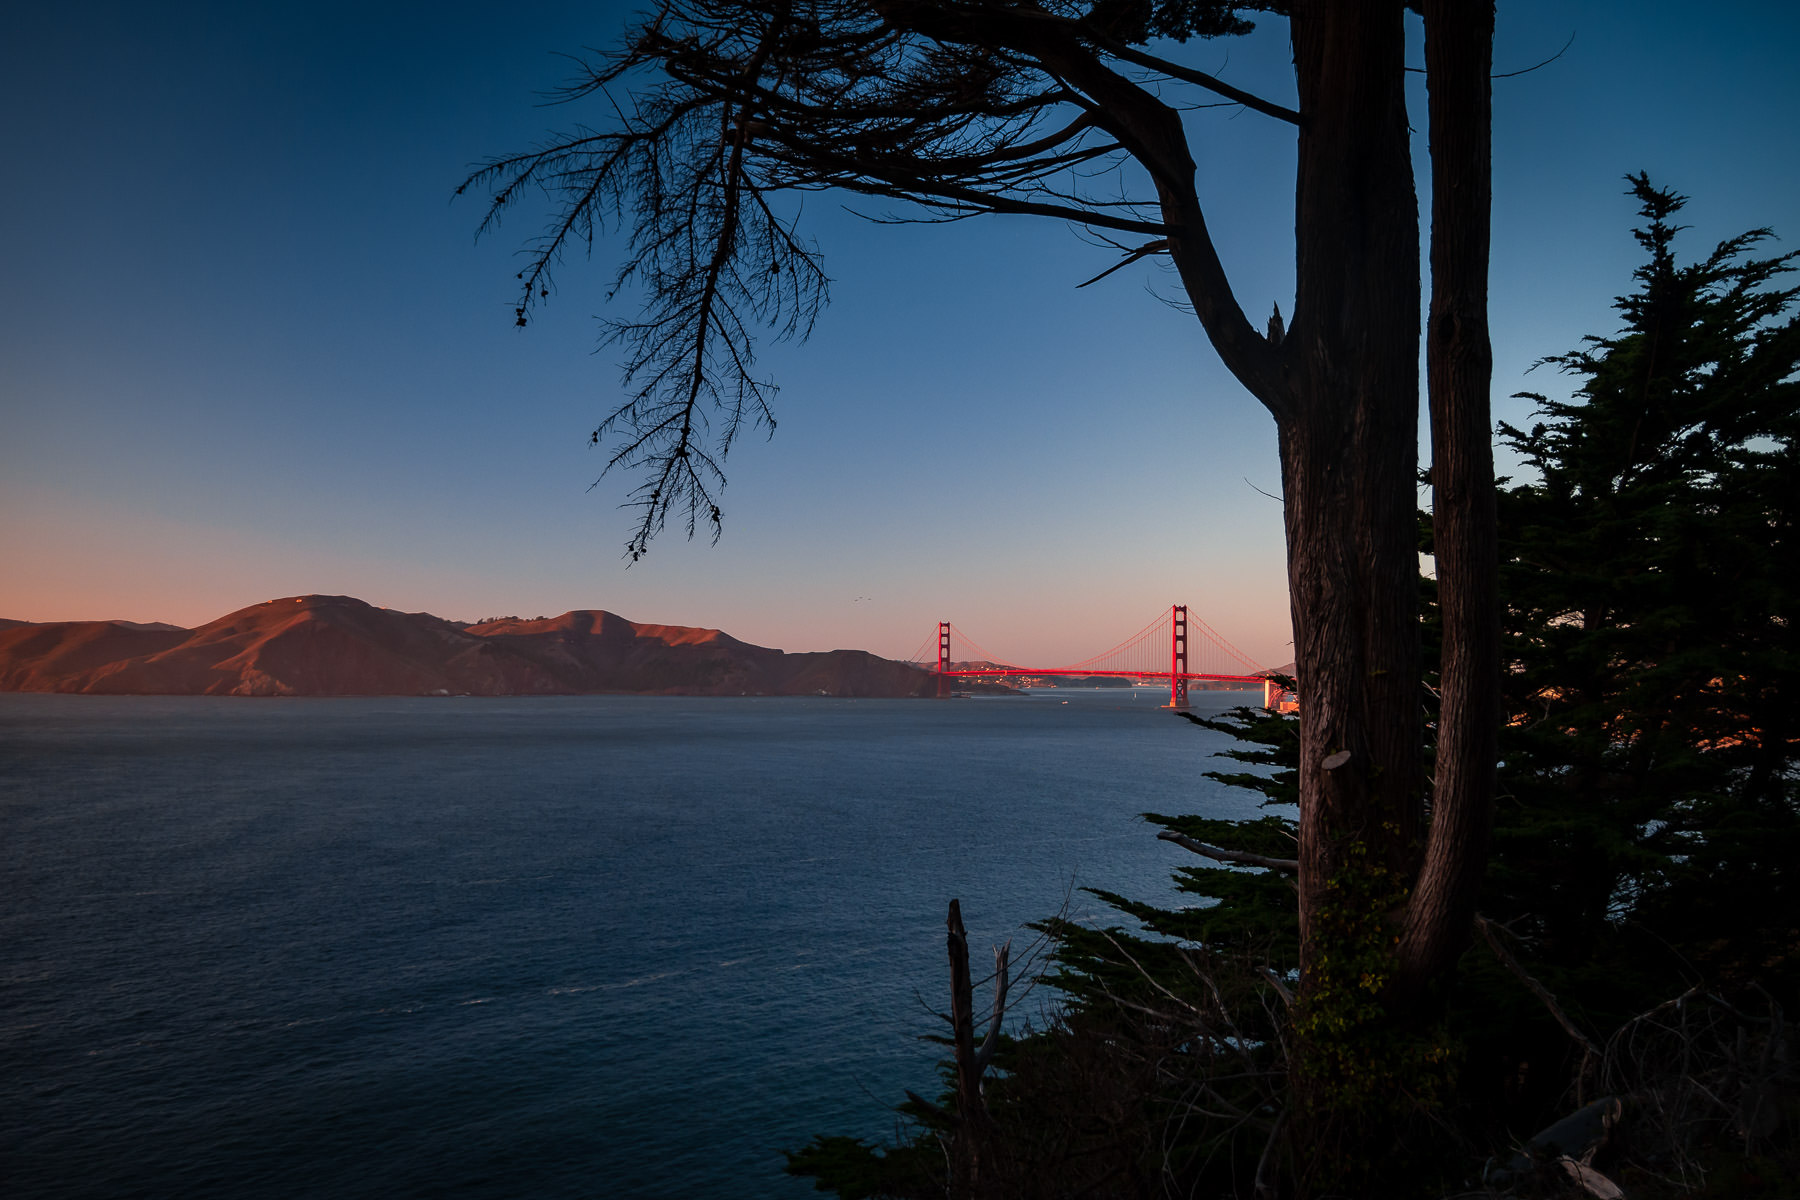 The last light of day illuminates San Francisco's Golden Gate Bridge.